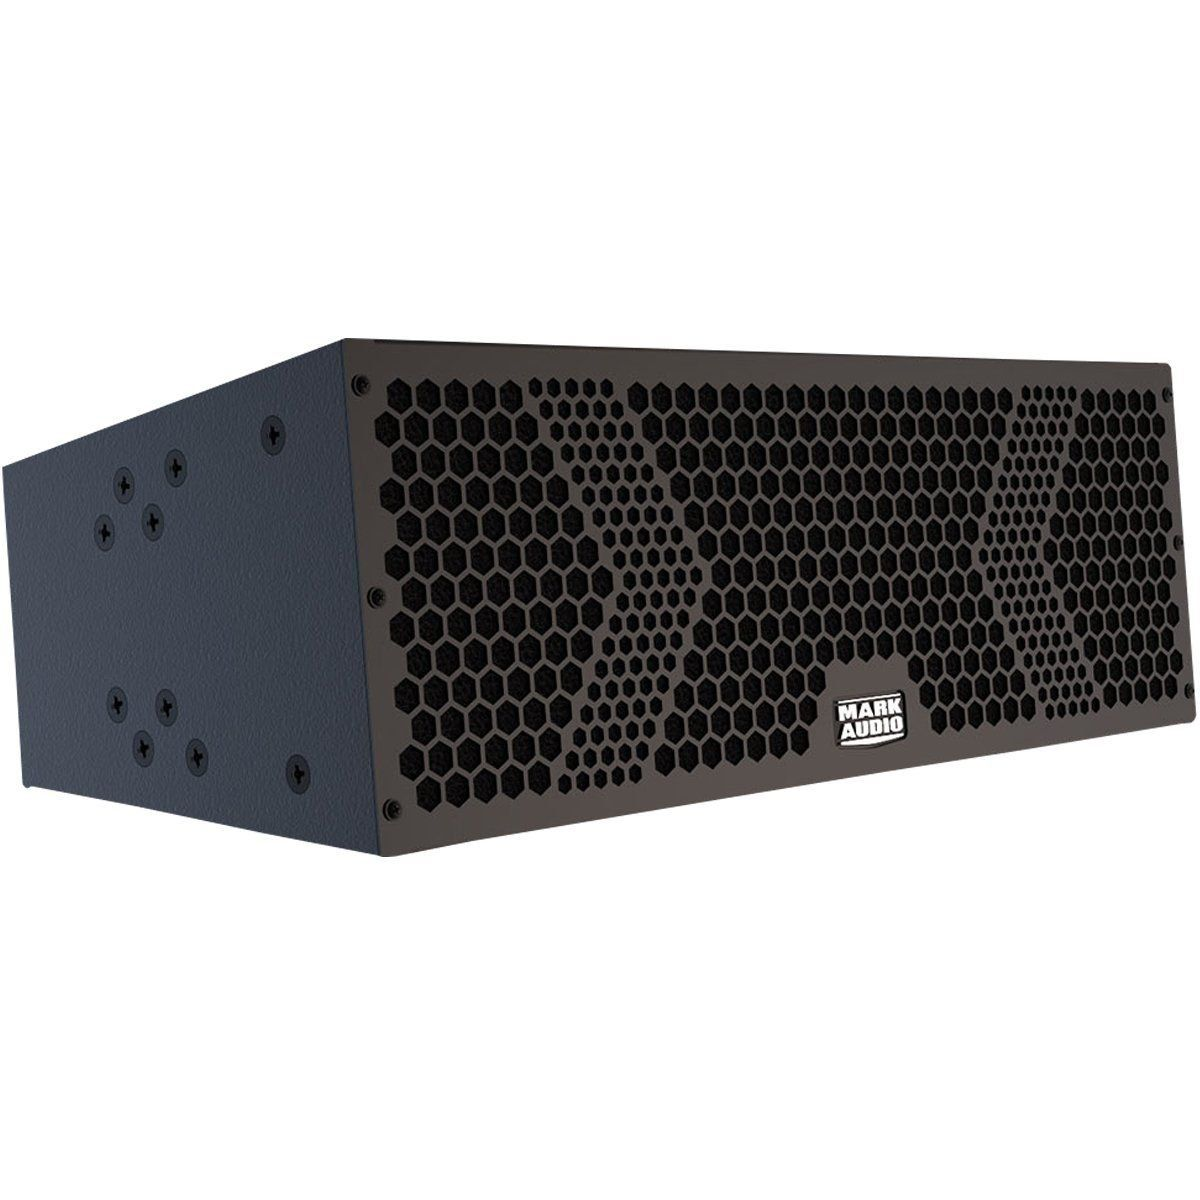 Line Array Ativo Mark Audio VMK 6 Falante 6 Polegadas 500W